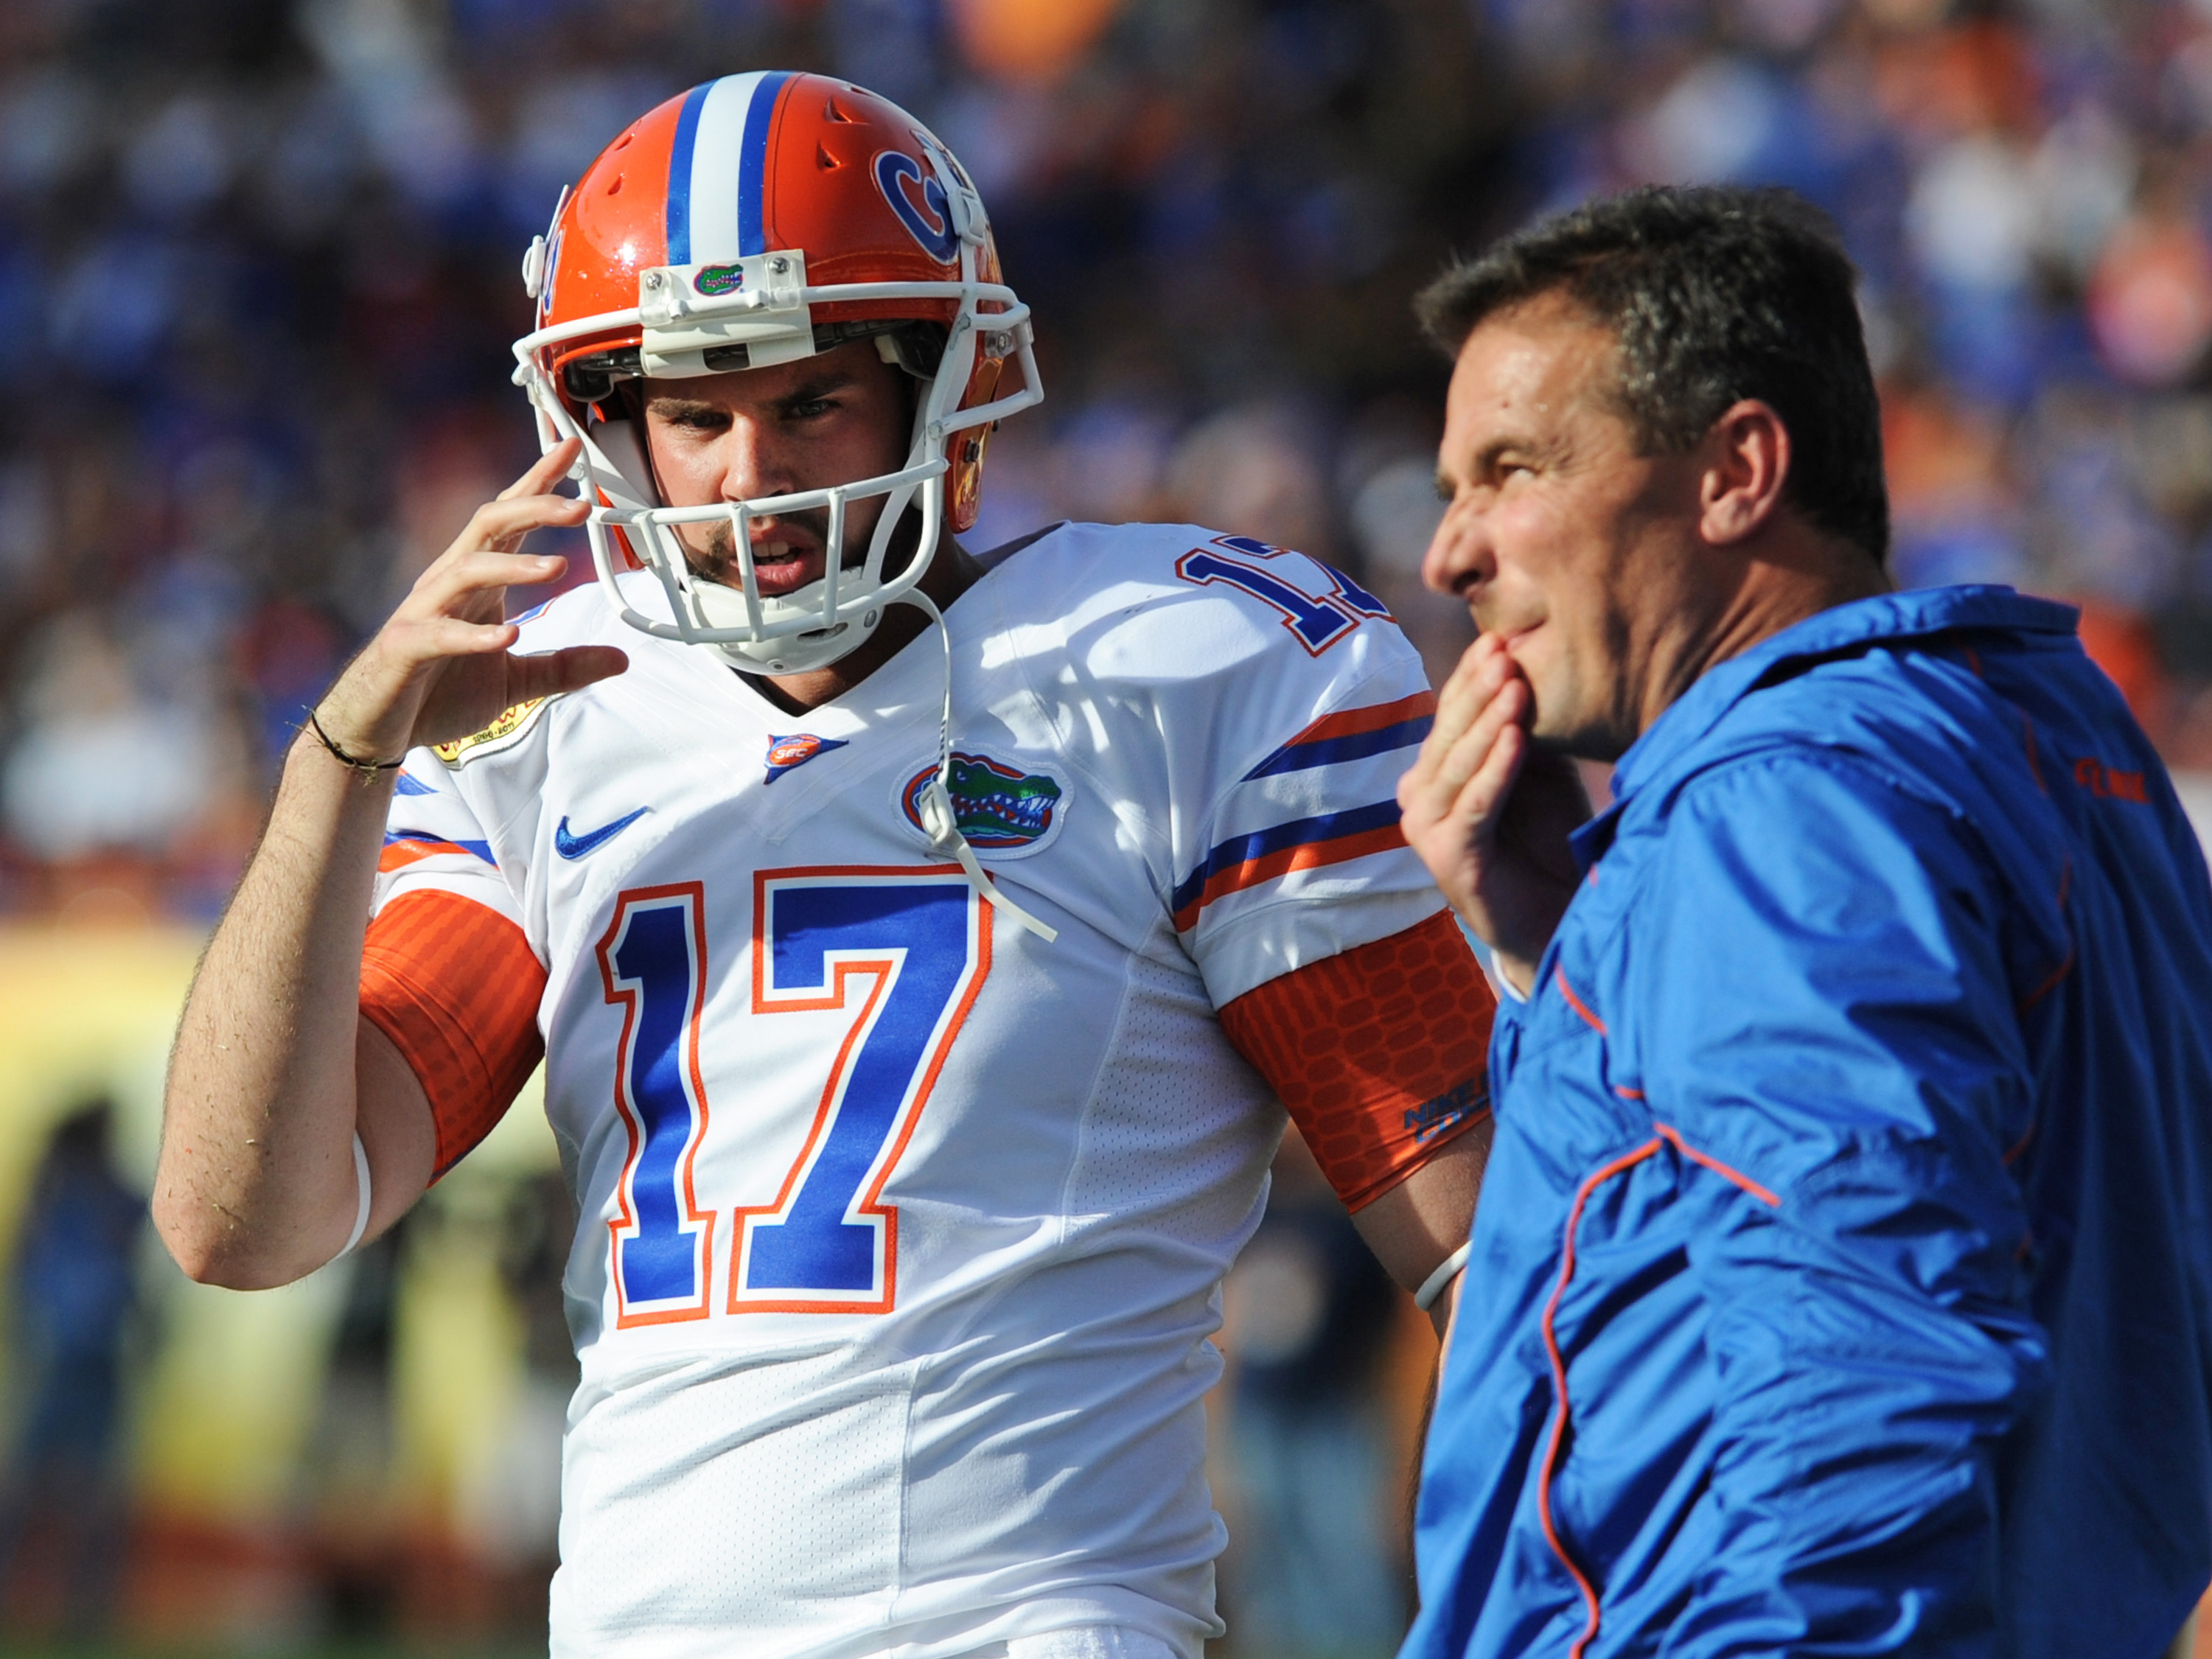 TAMPA, FL - JANUARY 1:  Kicker Chas Henry talks with coach Urban Meyer of the Florida Gators during play against the Penn State Nittany Lions January 1, 2010 in the 25th Outback Bowl at Raymond James Stadium in Tampa, Florida.  (Photo by Al Messerschmidt/